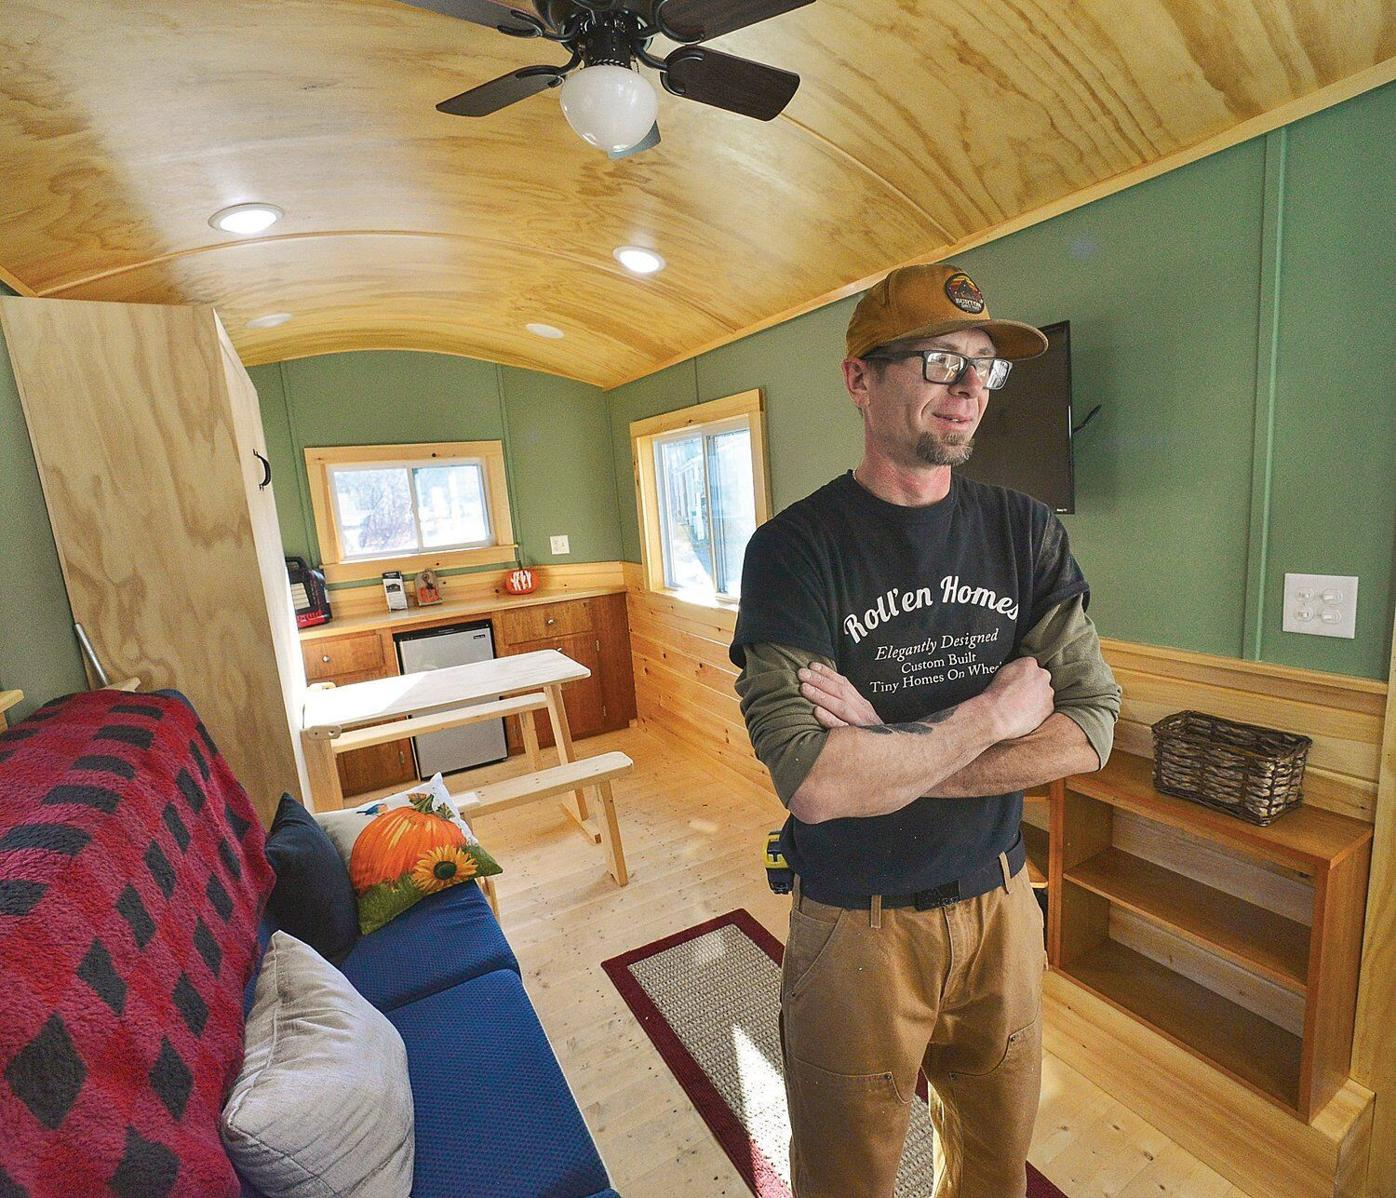 Tiny home business 'rolls' in to Townshend